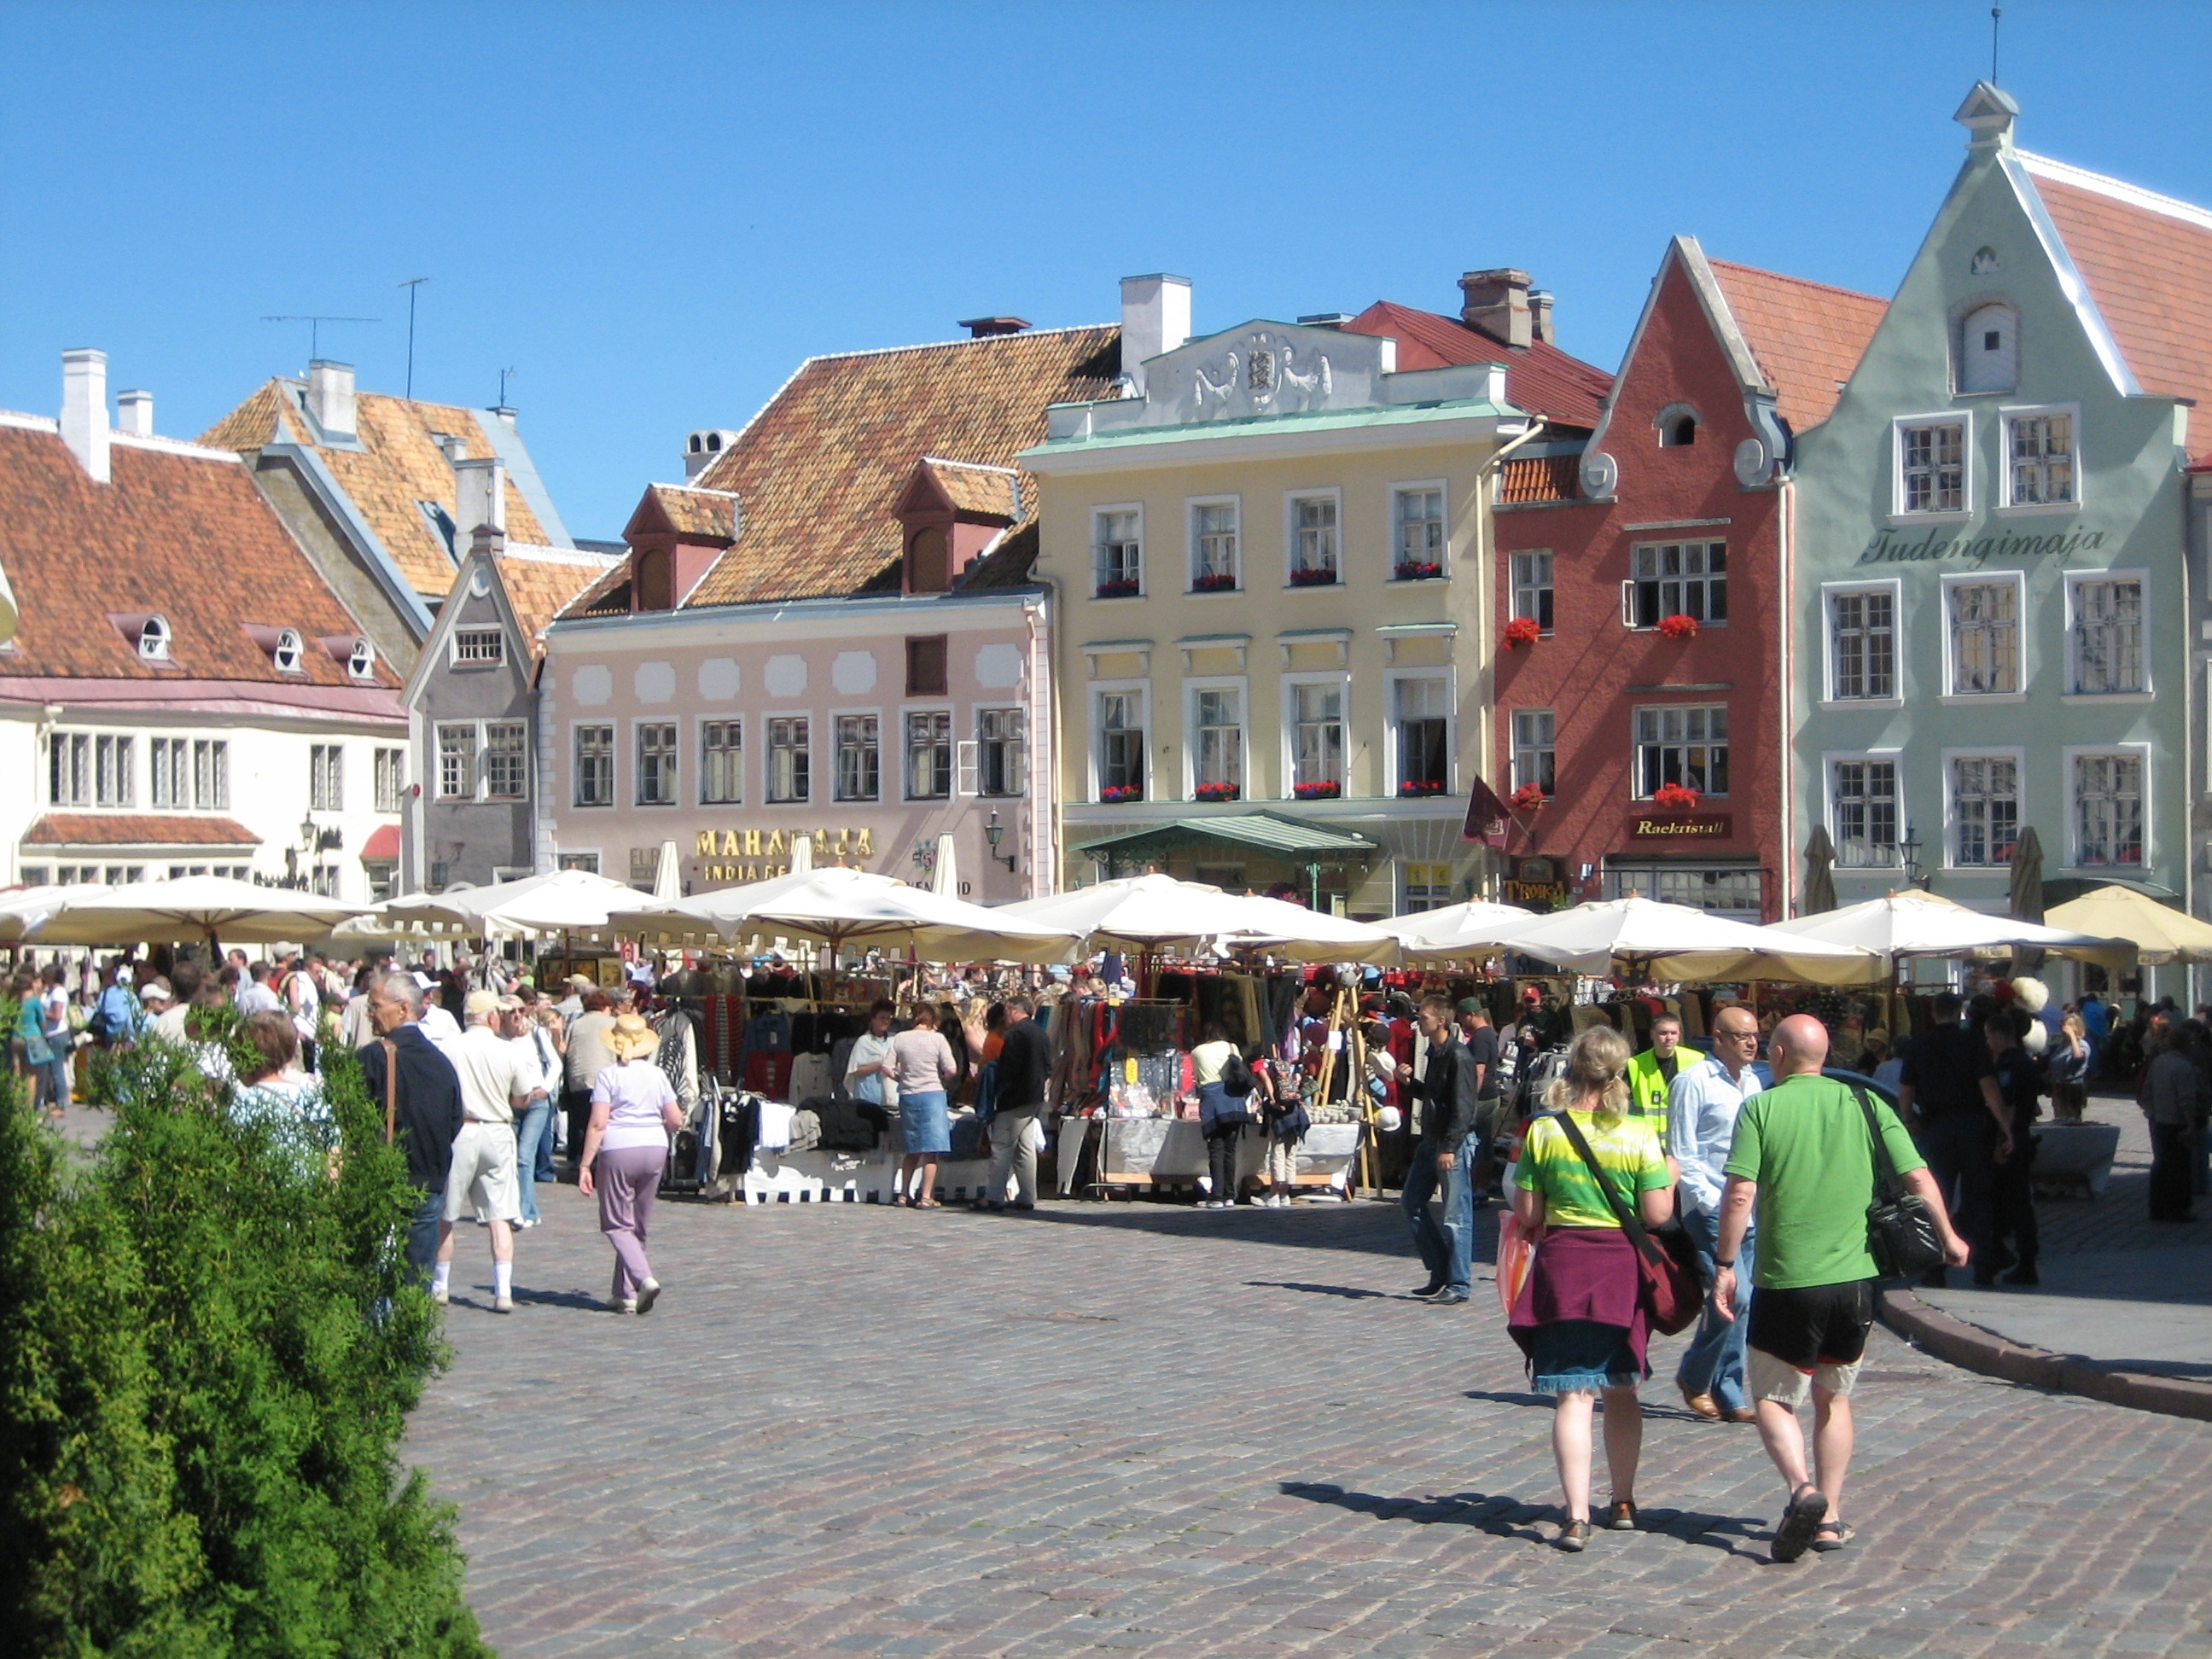 Danzig Wallpaper Hd File A Market Place In The Historical Old Town Of Tallinn